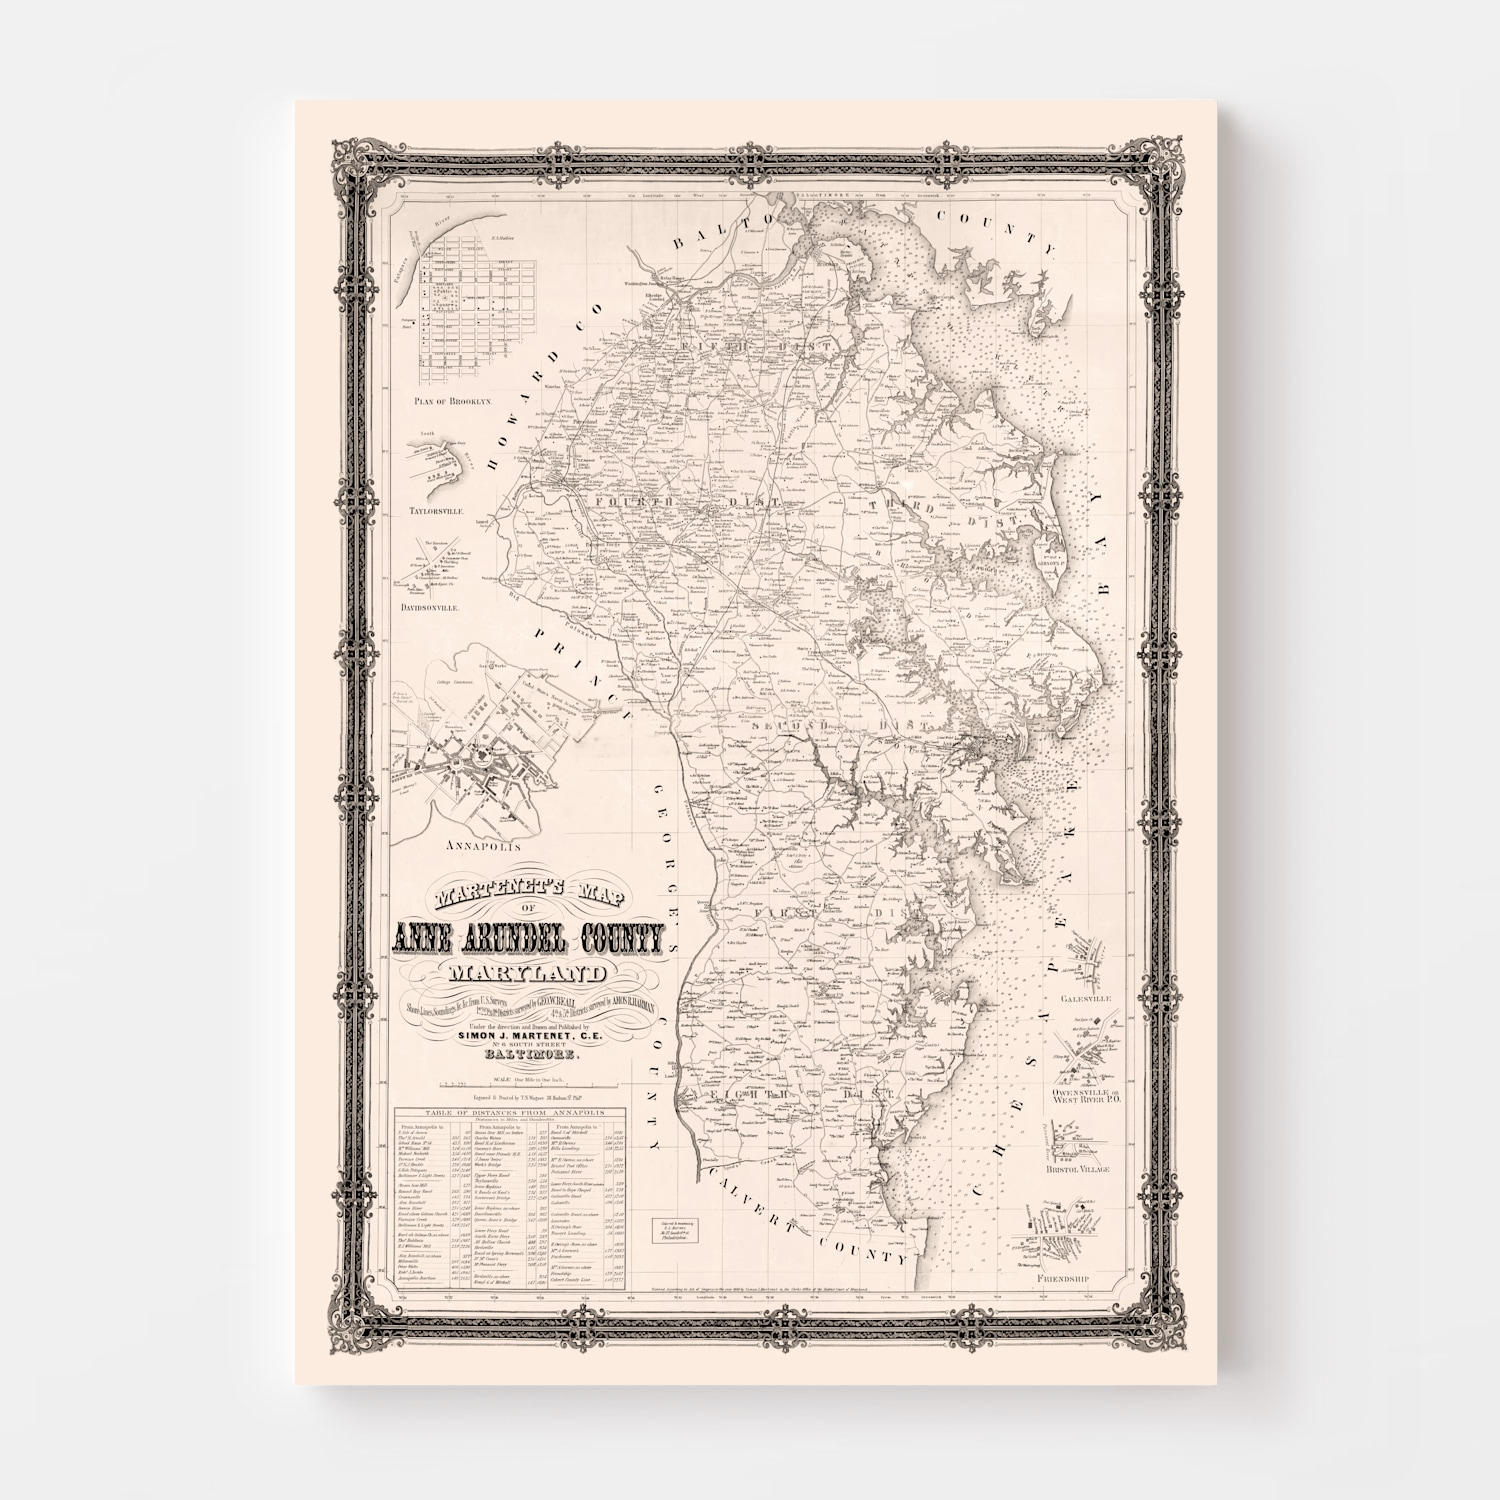 Vintage Map of Anne Arundel County, Maryland 1860